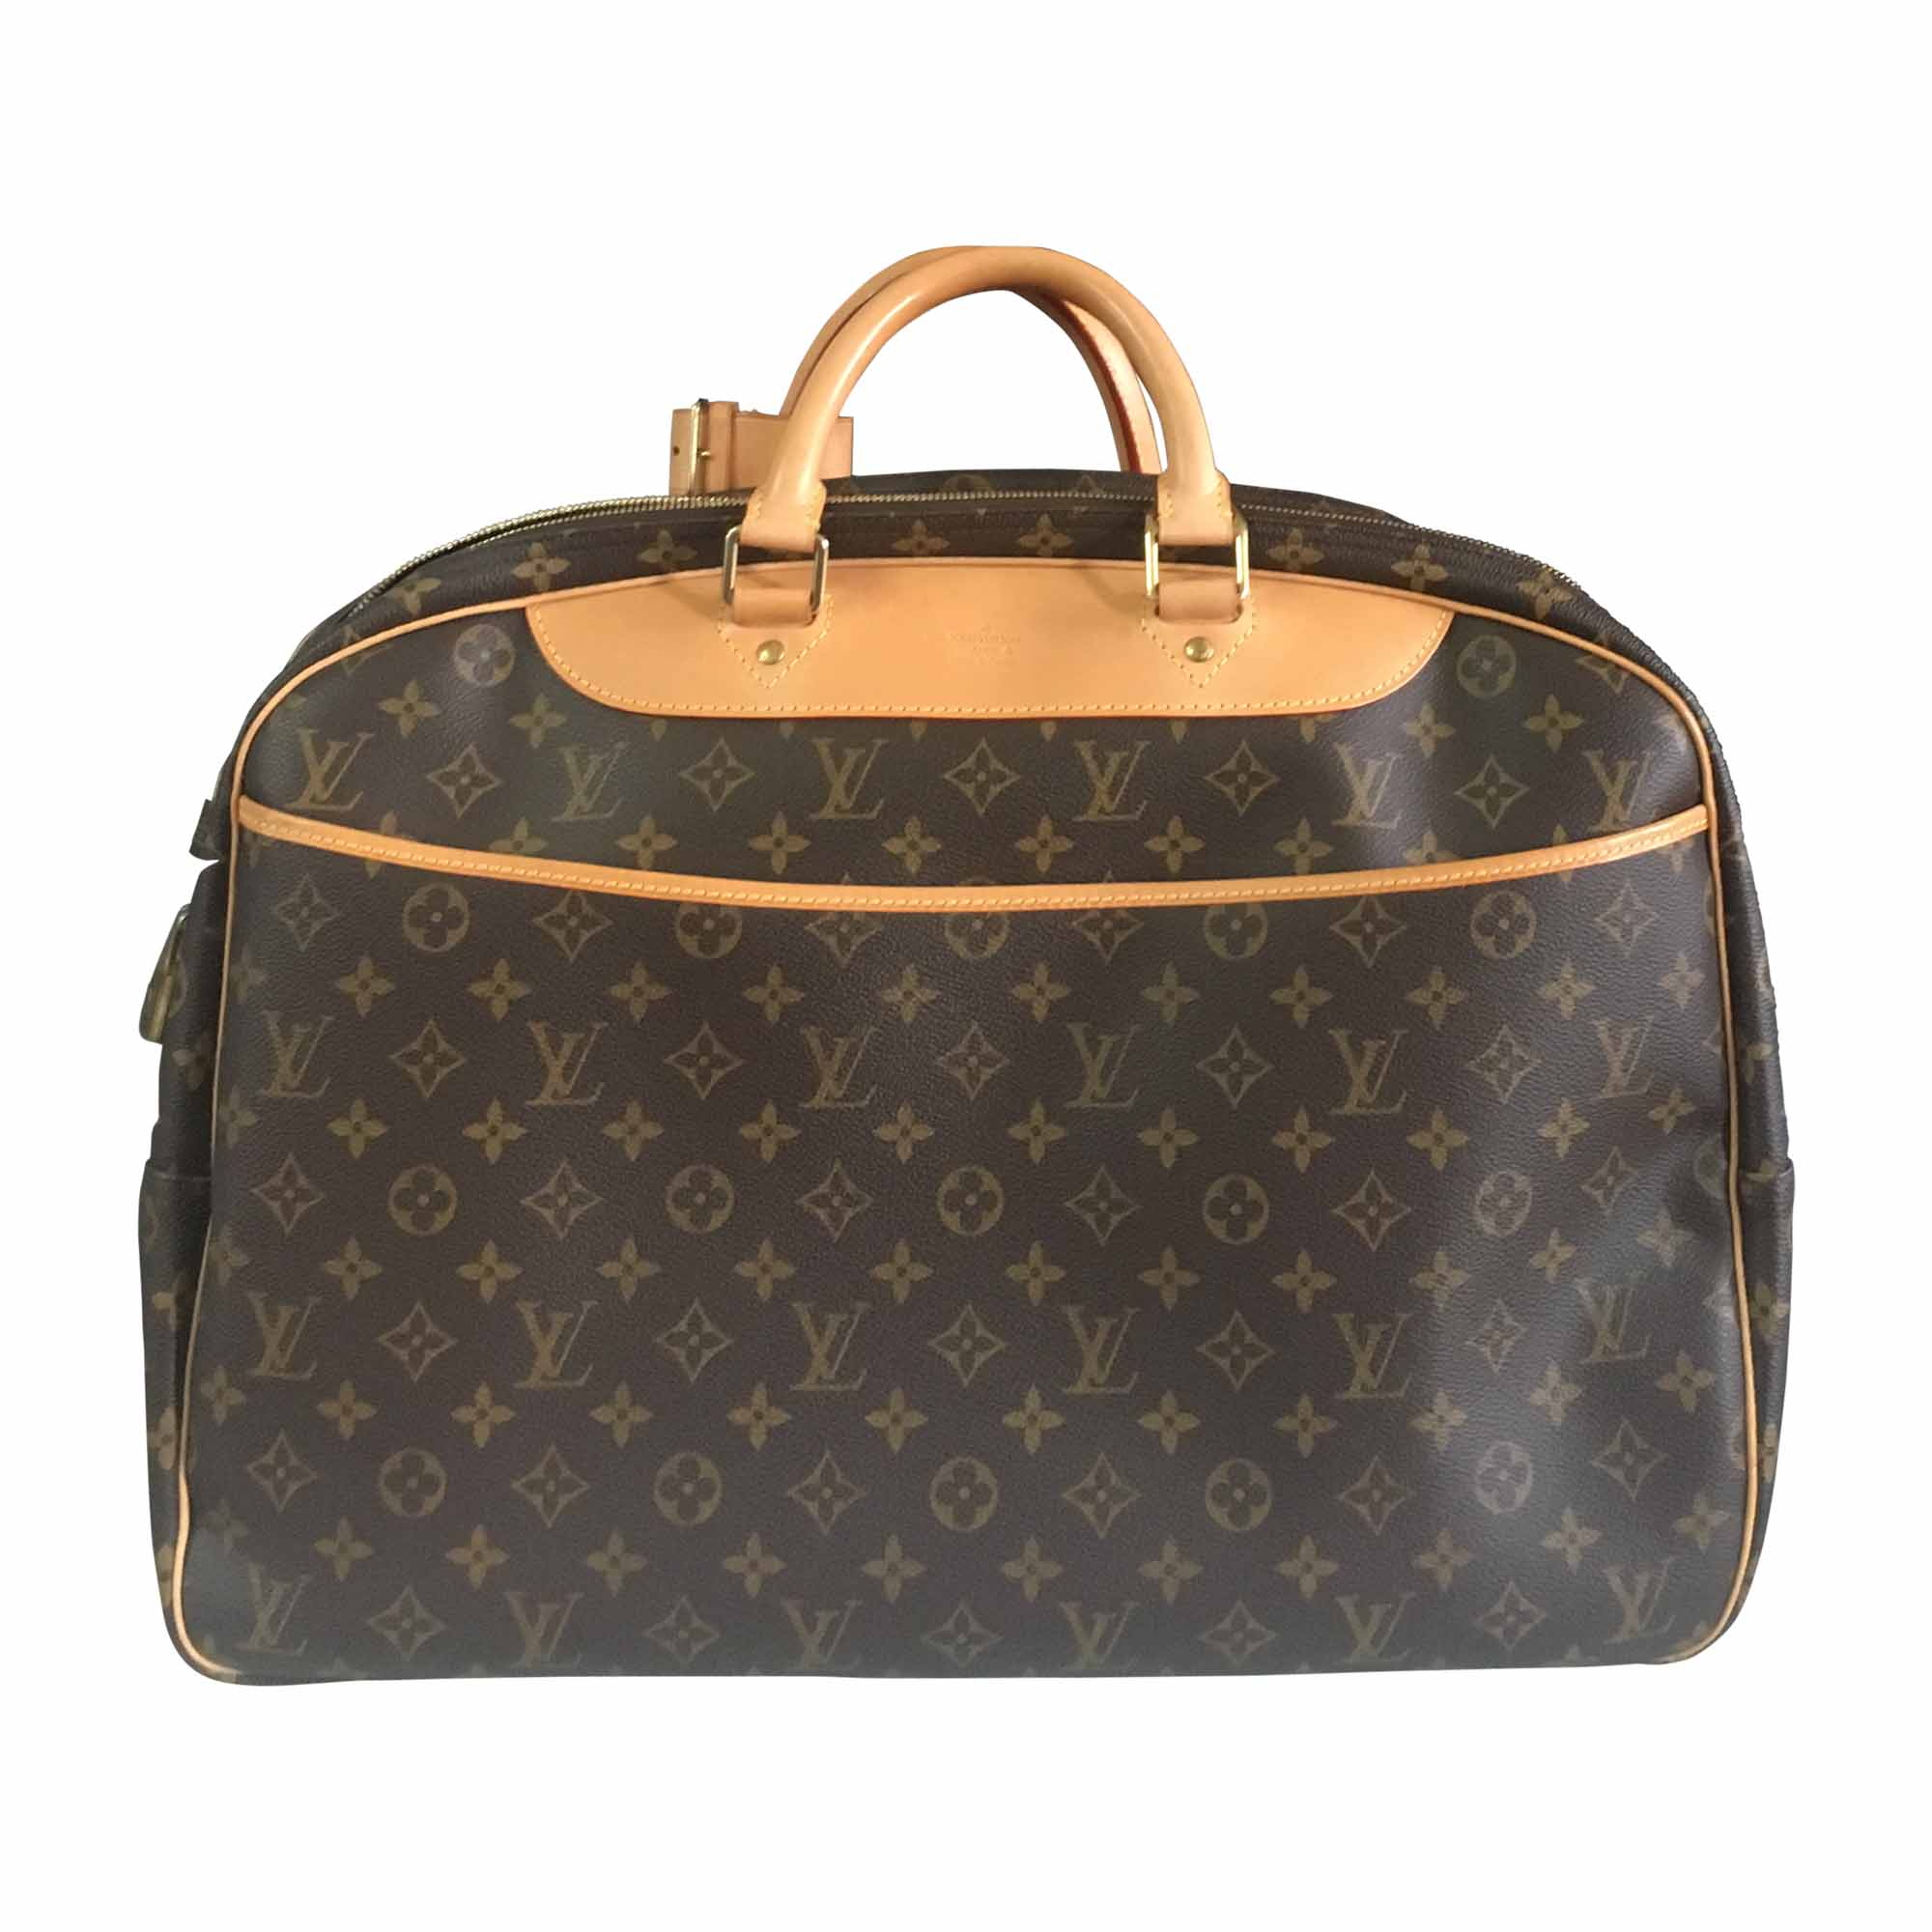 a96b895e57df Sac XL en cuir LOUIS VUITTON marron vendu par Jade sue590381 - 7434566